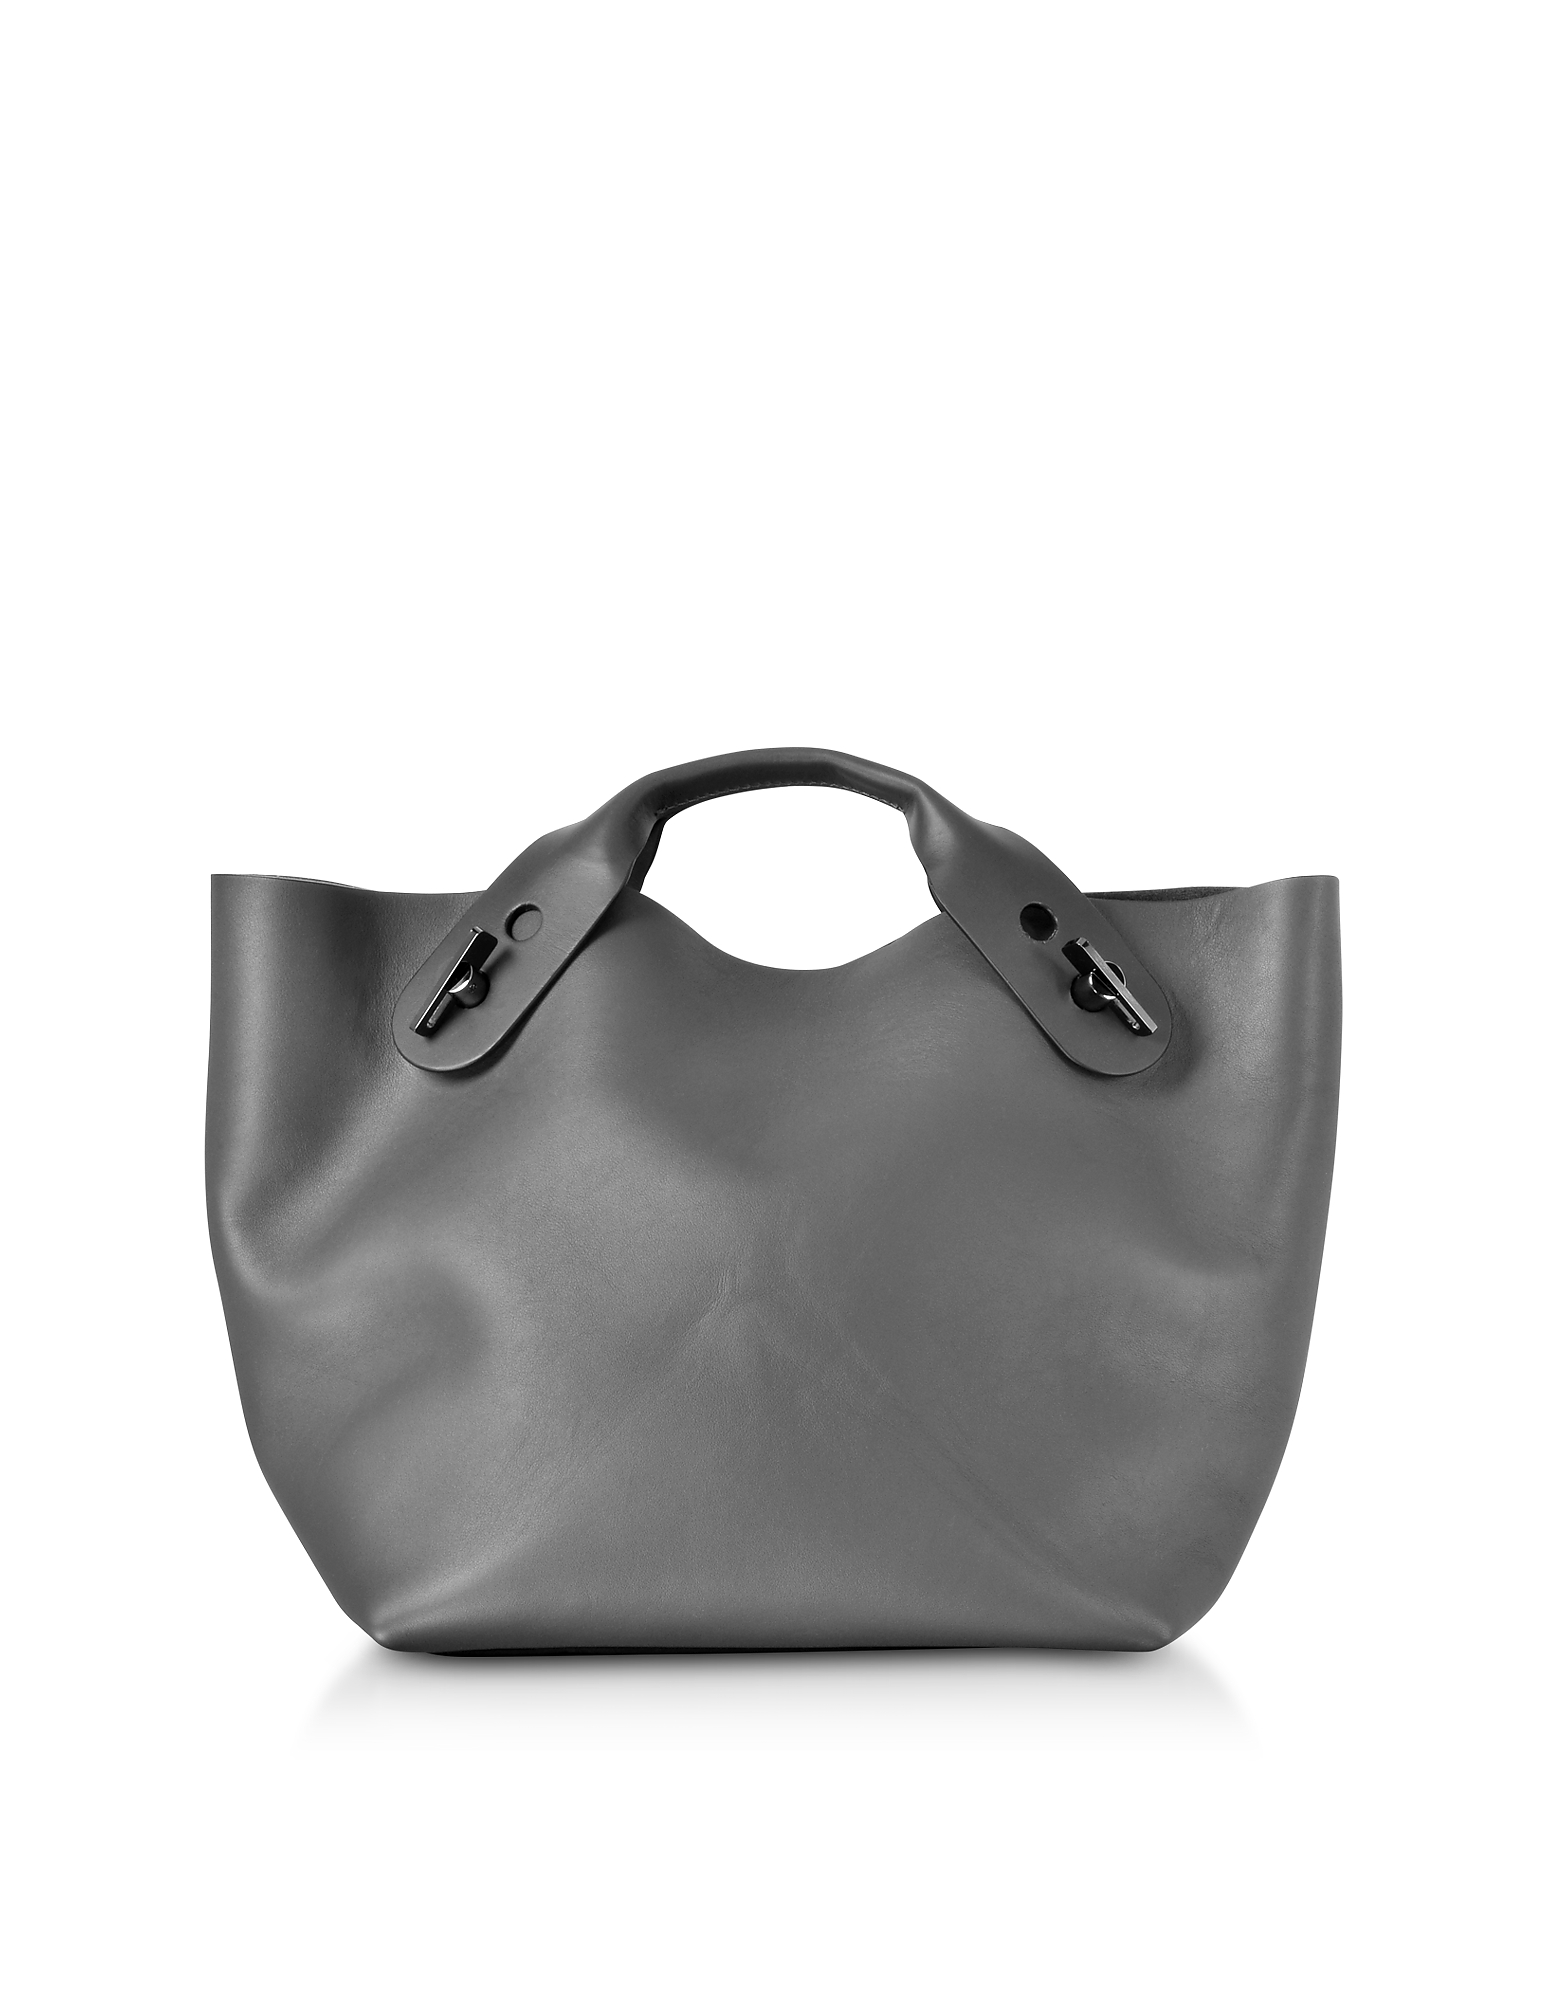 Image of Sophie Hulme Designer Handbags, Charcoal Soft Leather Bolt Tote